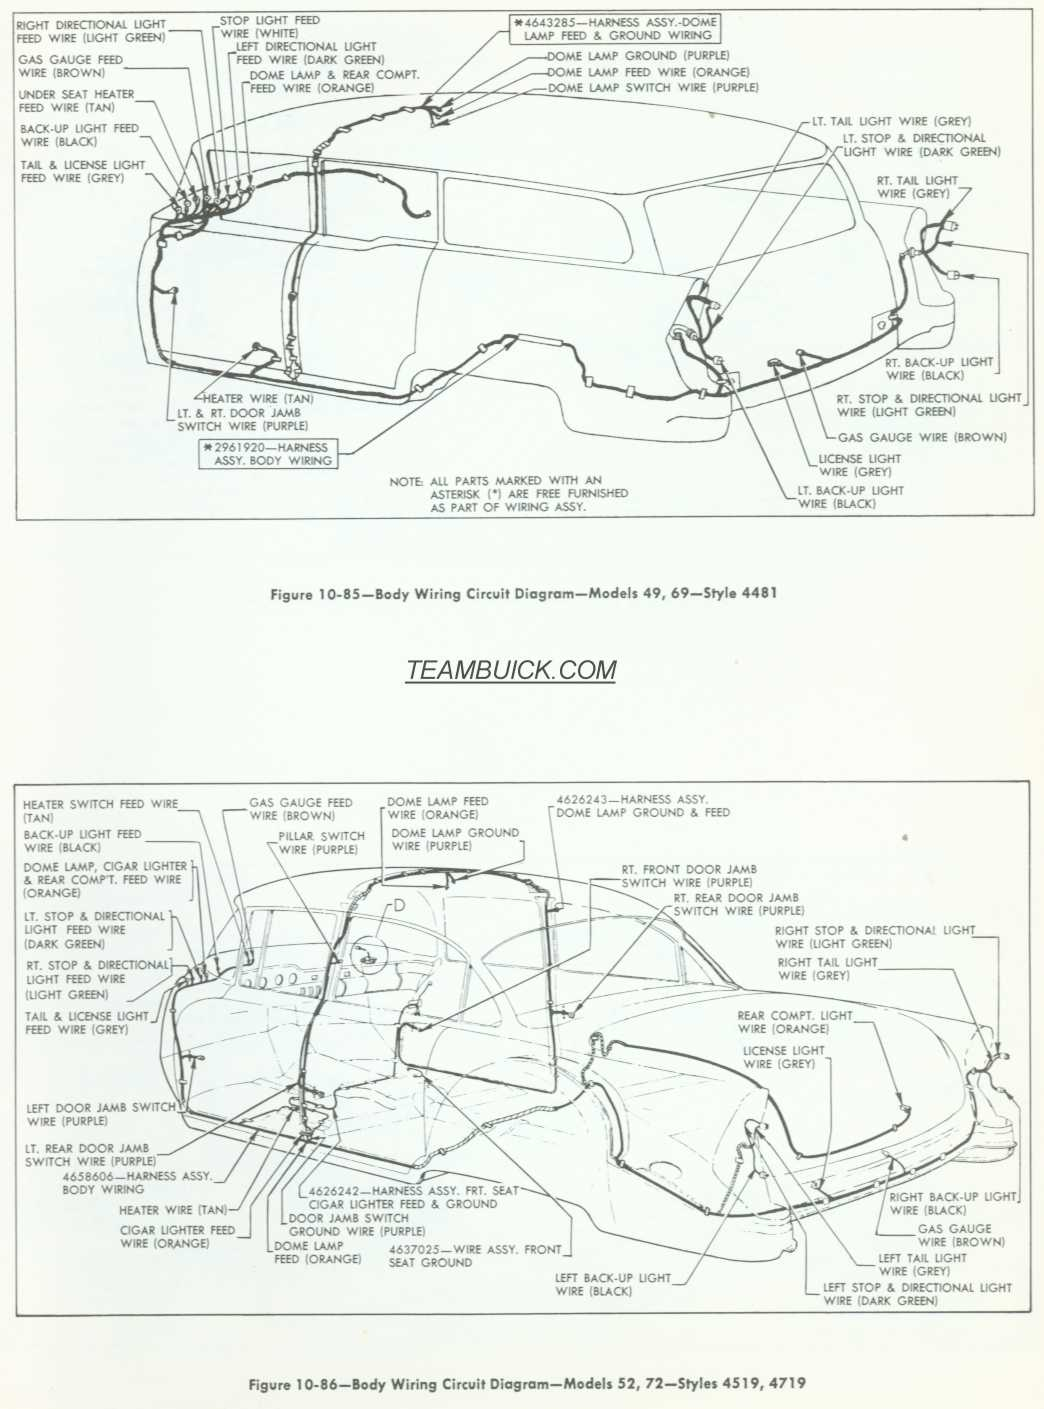 1955 Buick Body Wiring Diagrams, Model 46, 69, 52, 72